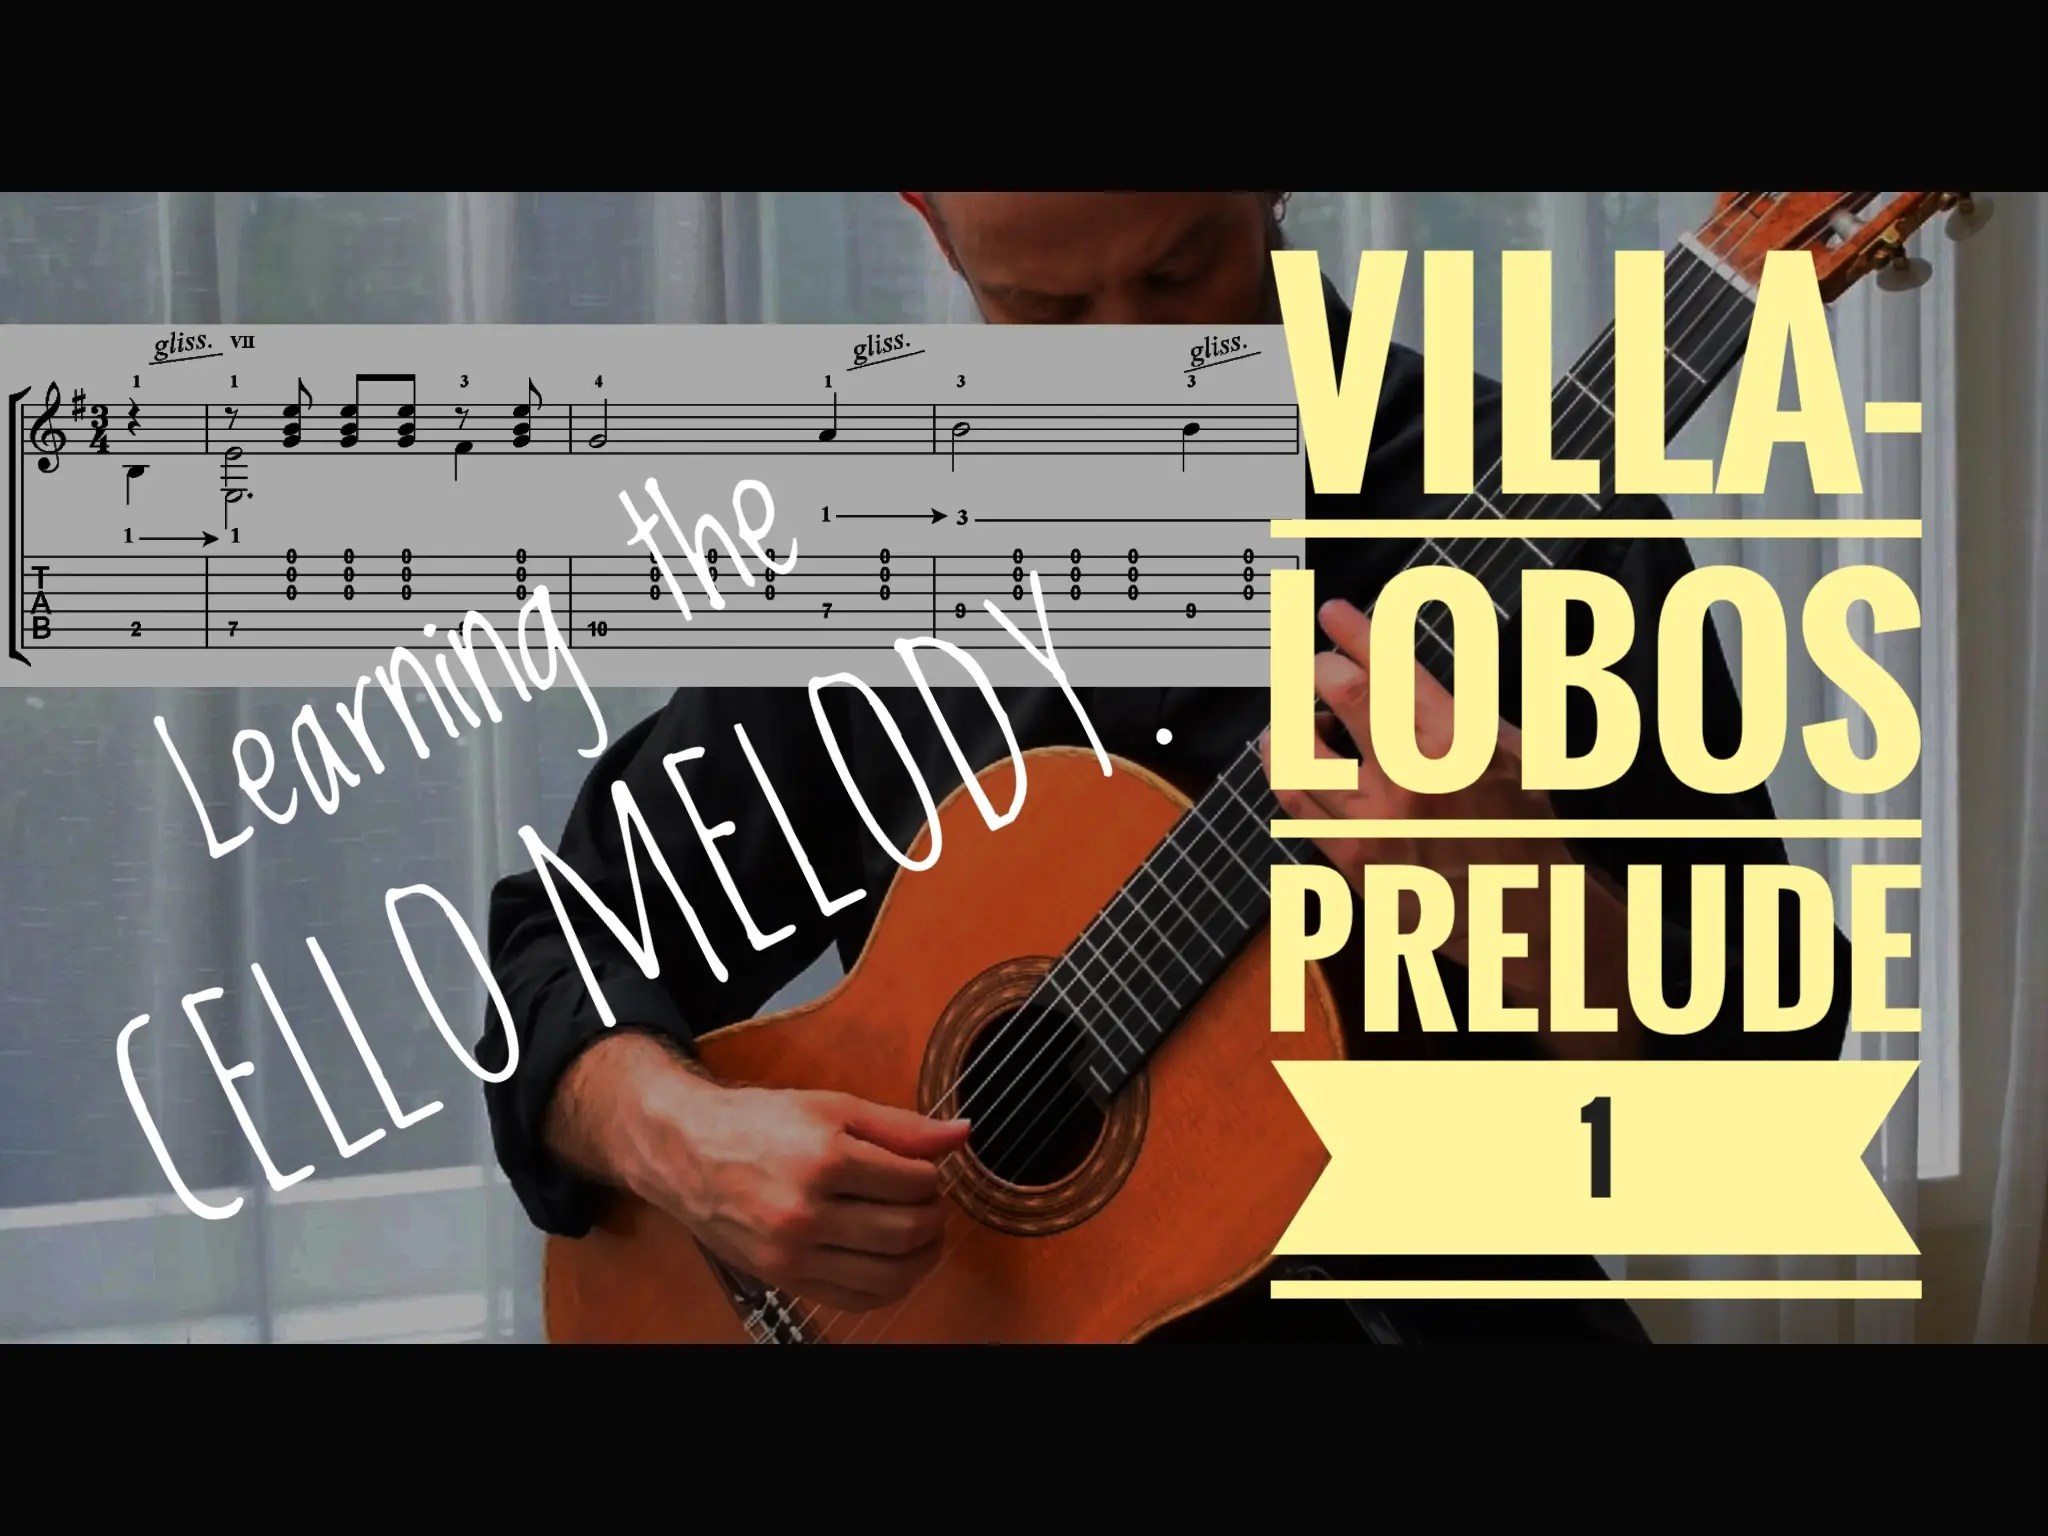 Learn Prelude 1 by Villa-Lobos